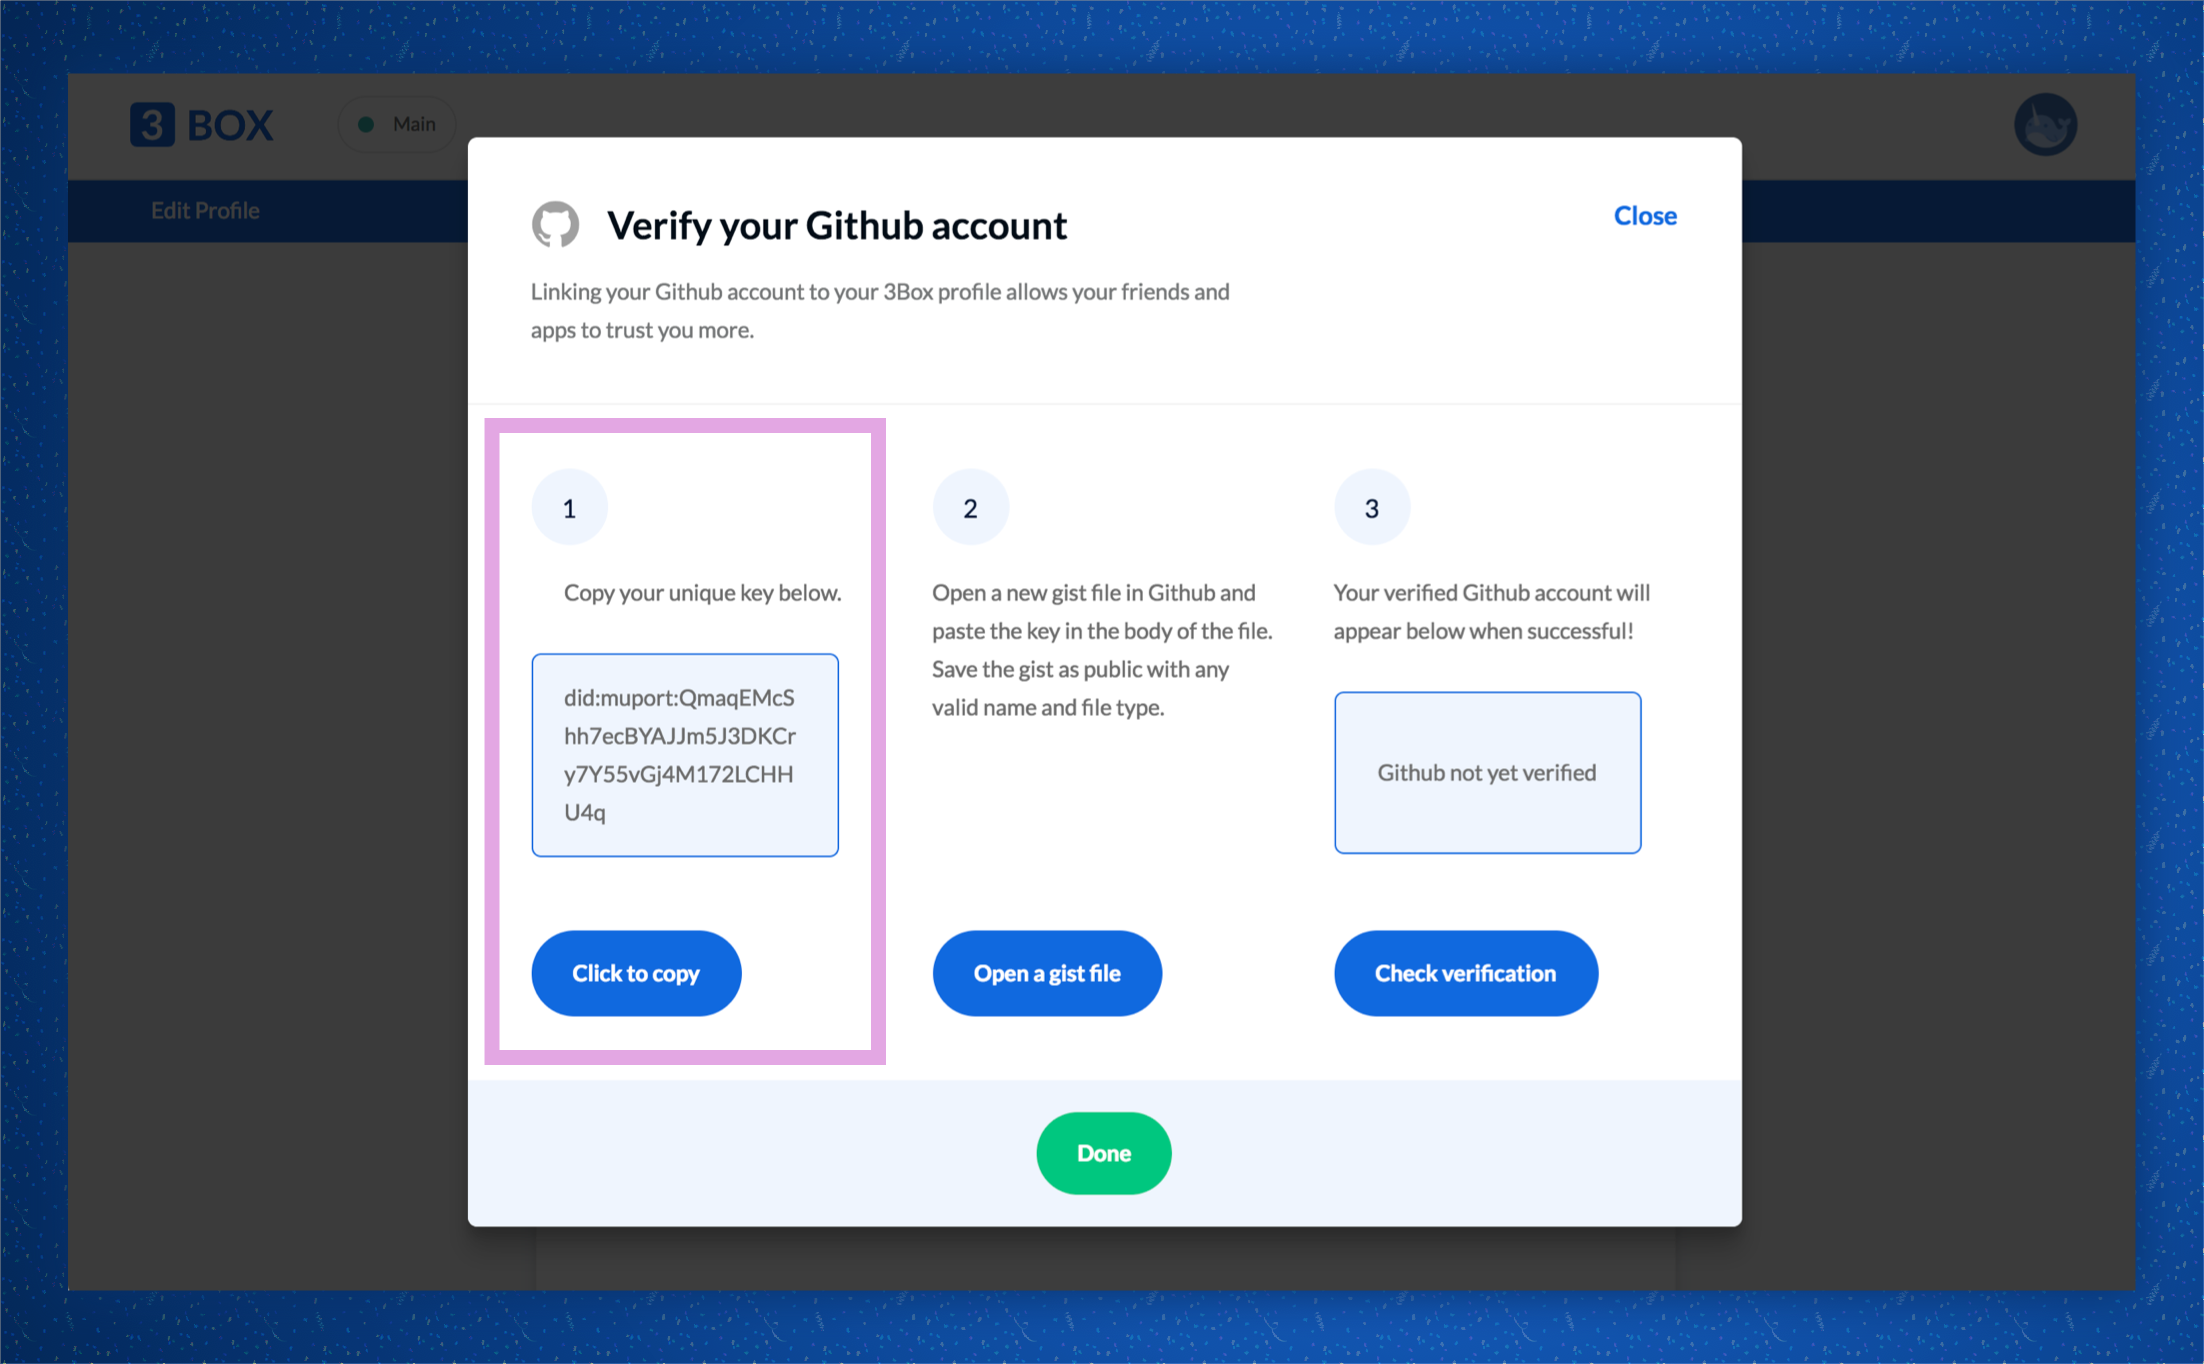 ✅ Verify your Twitter and Github Accounts on 3Box - 3Box